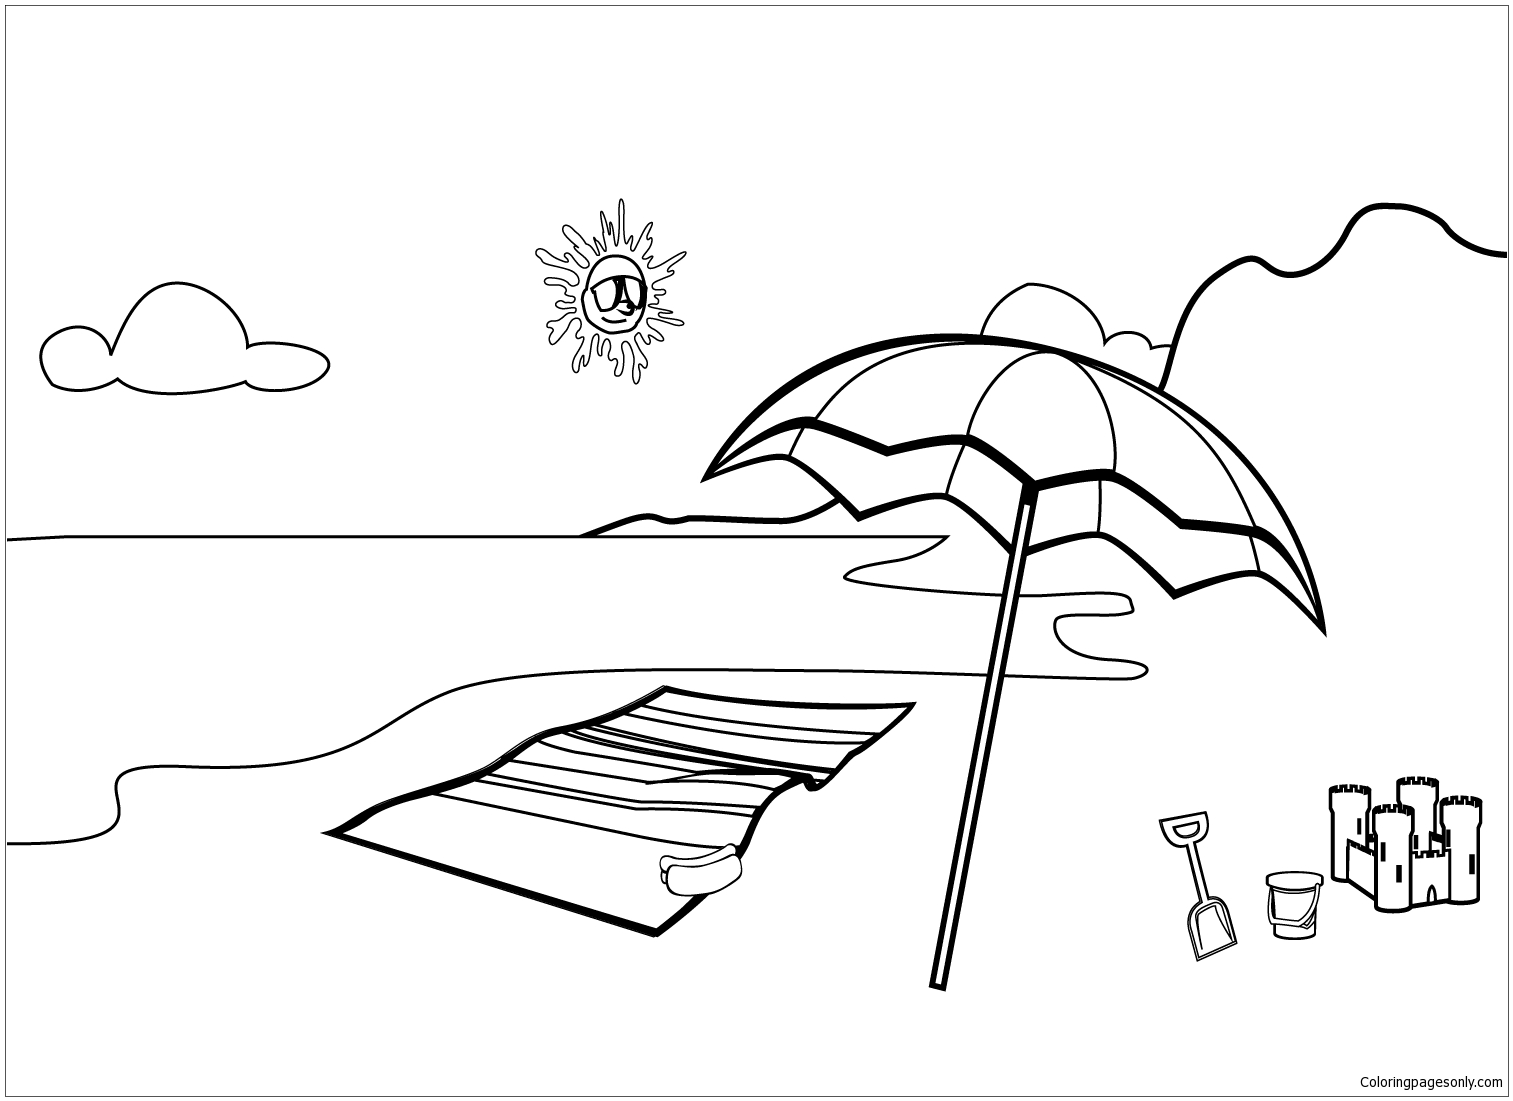 Beach Theme Coloring Page - Free Coloring Pages Online